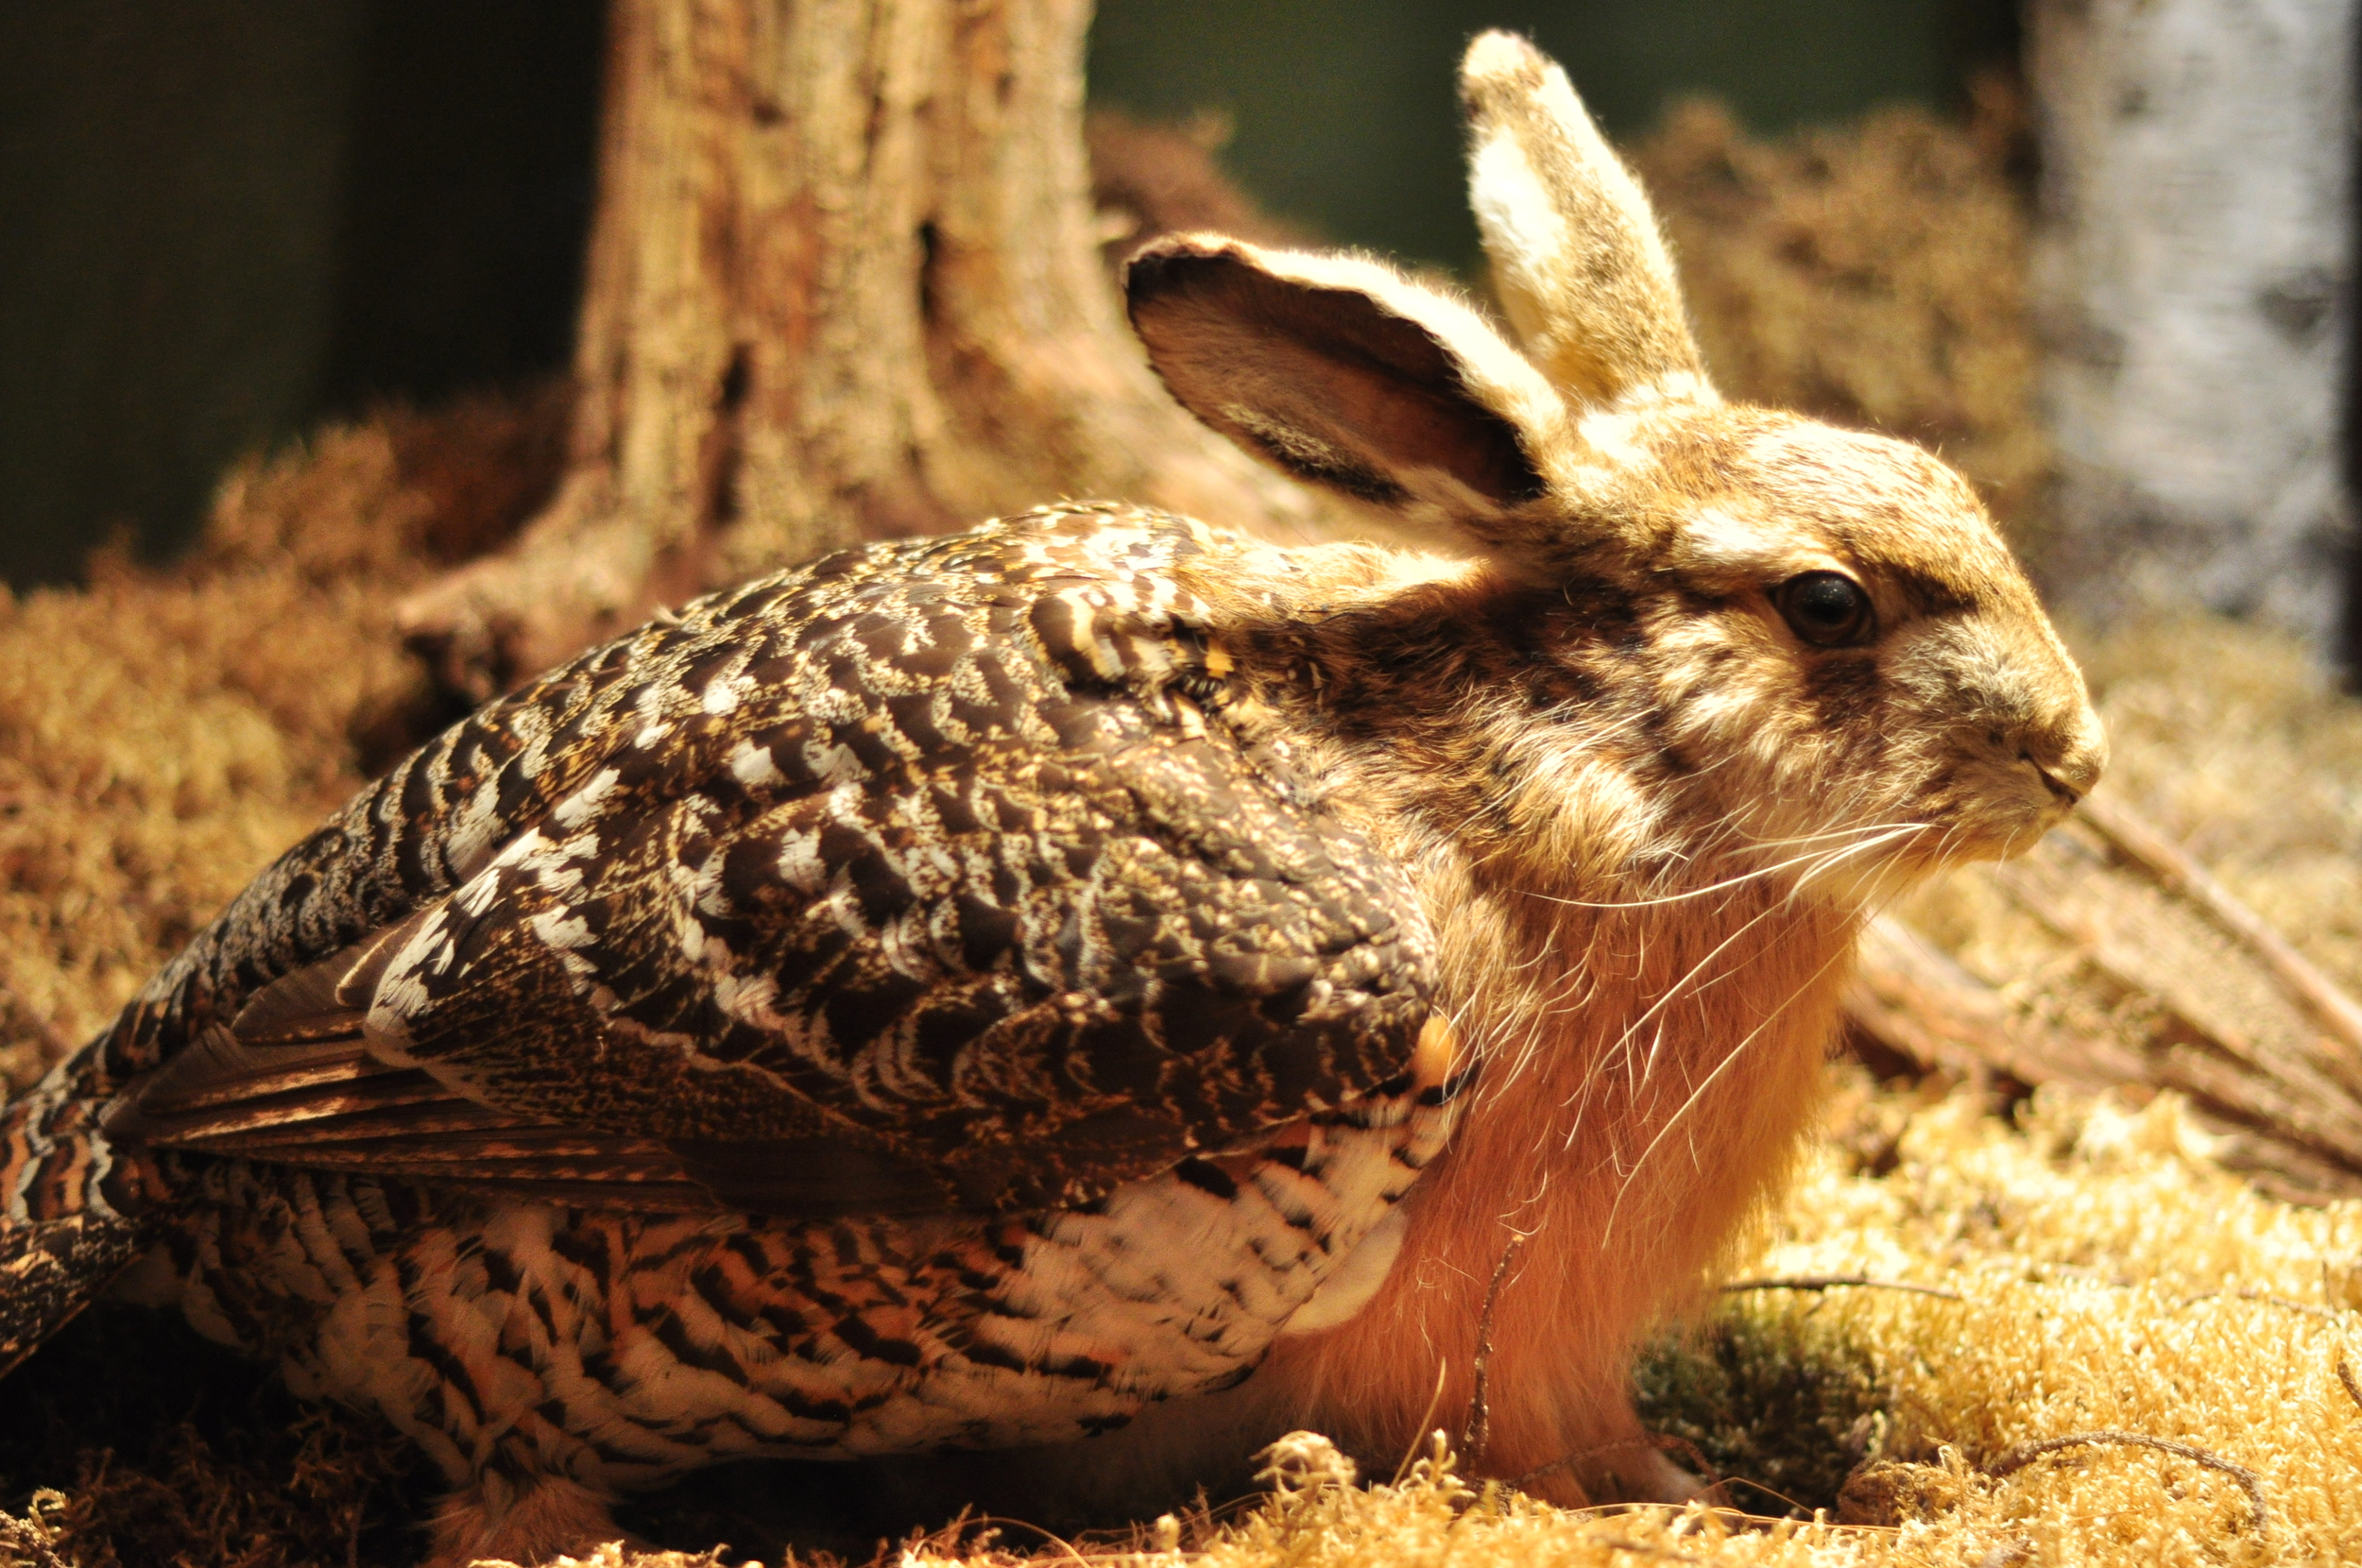 A skvader: a taxidermy cross between a hare and a grouse. Photos: Jo Keeling